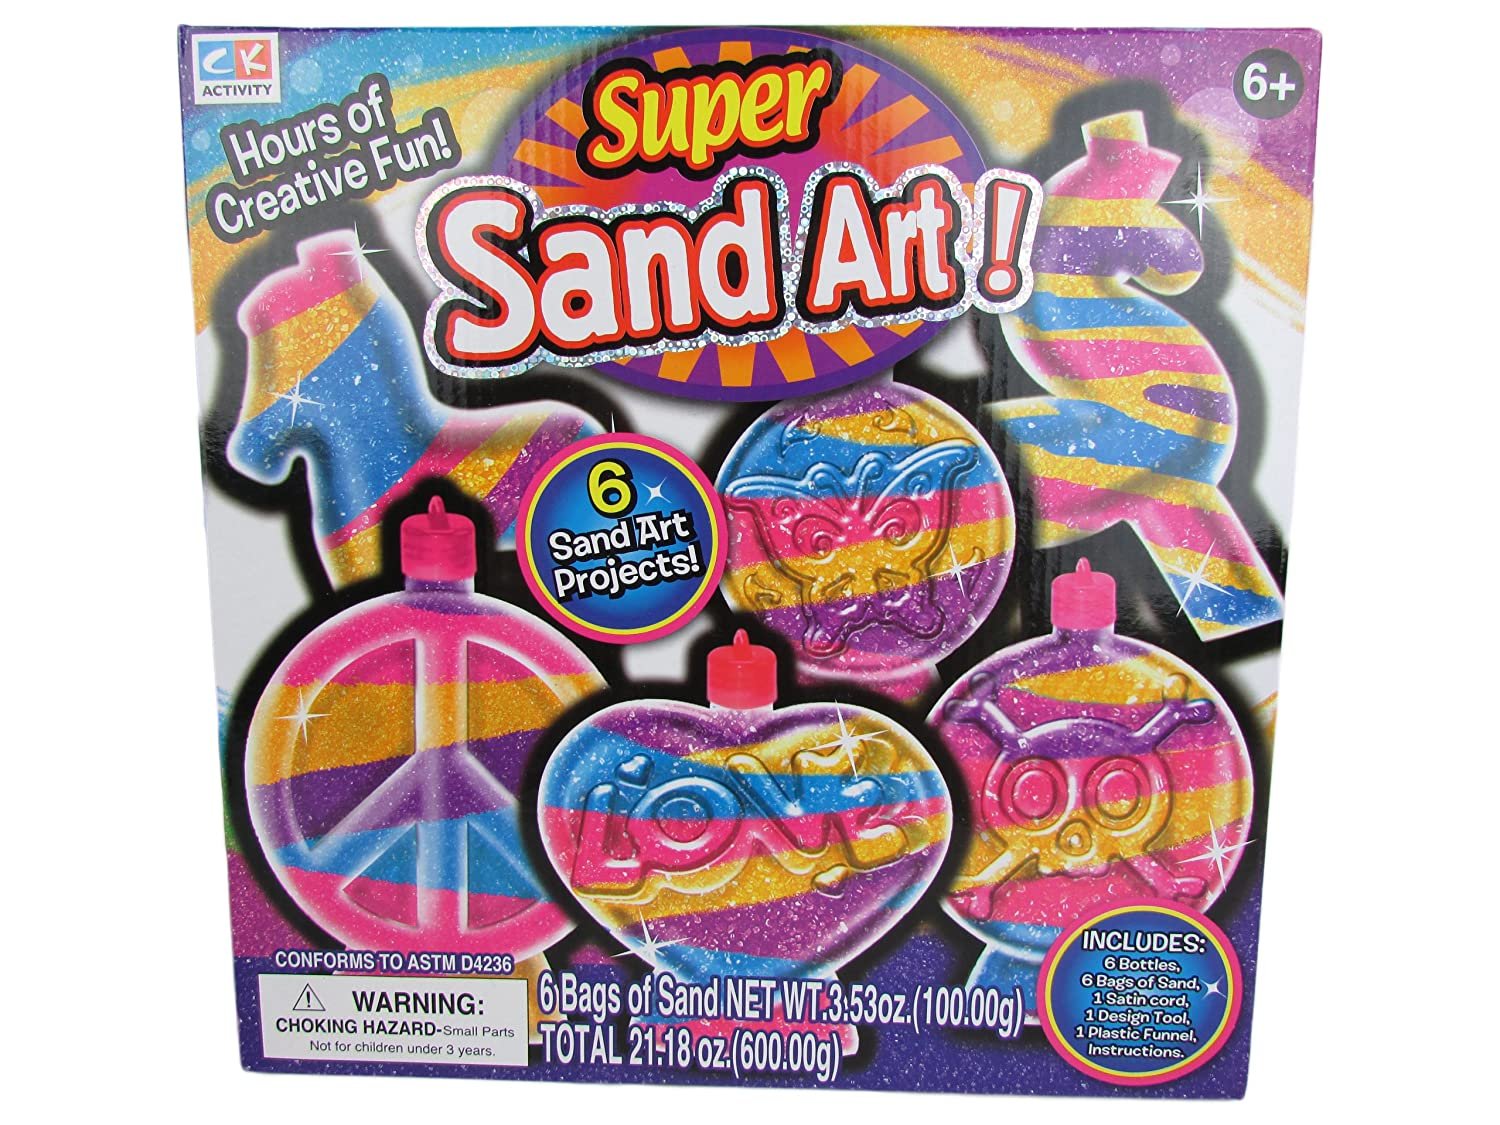 Super Sand Art - 6 Sand Art Projects for Kids to Enjoy